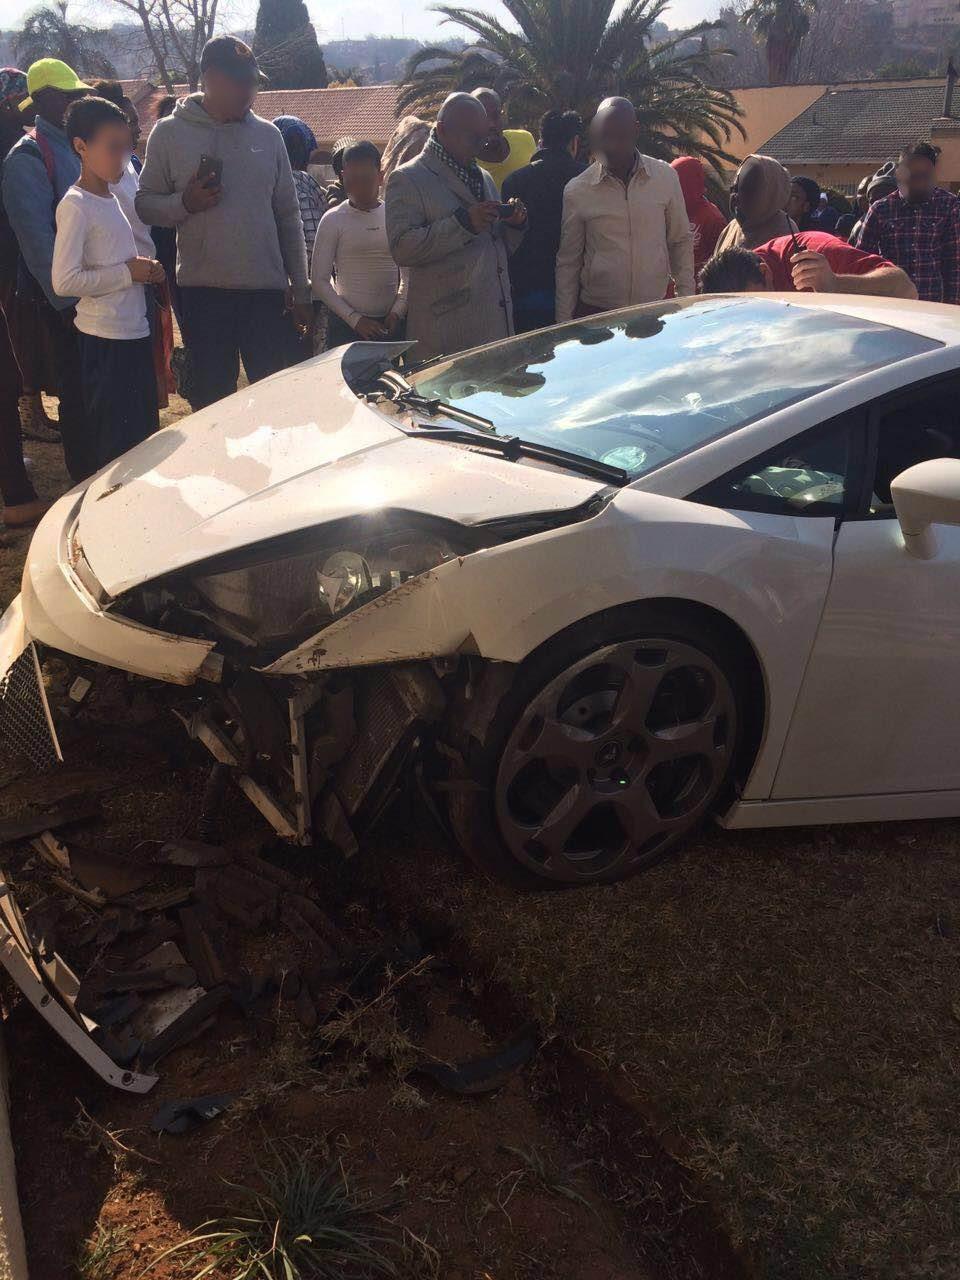 Lamborghini Gallardo That Crashed In Johannesburg Looks Like